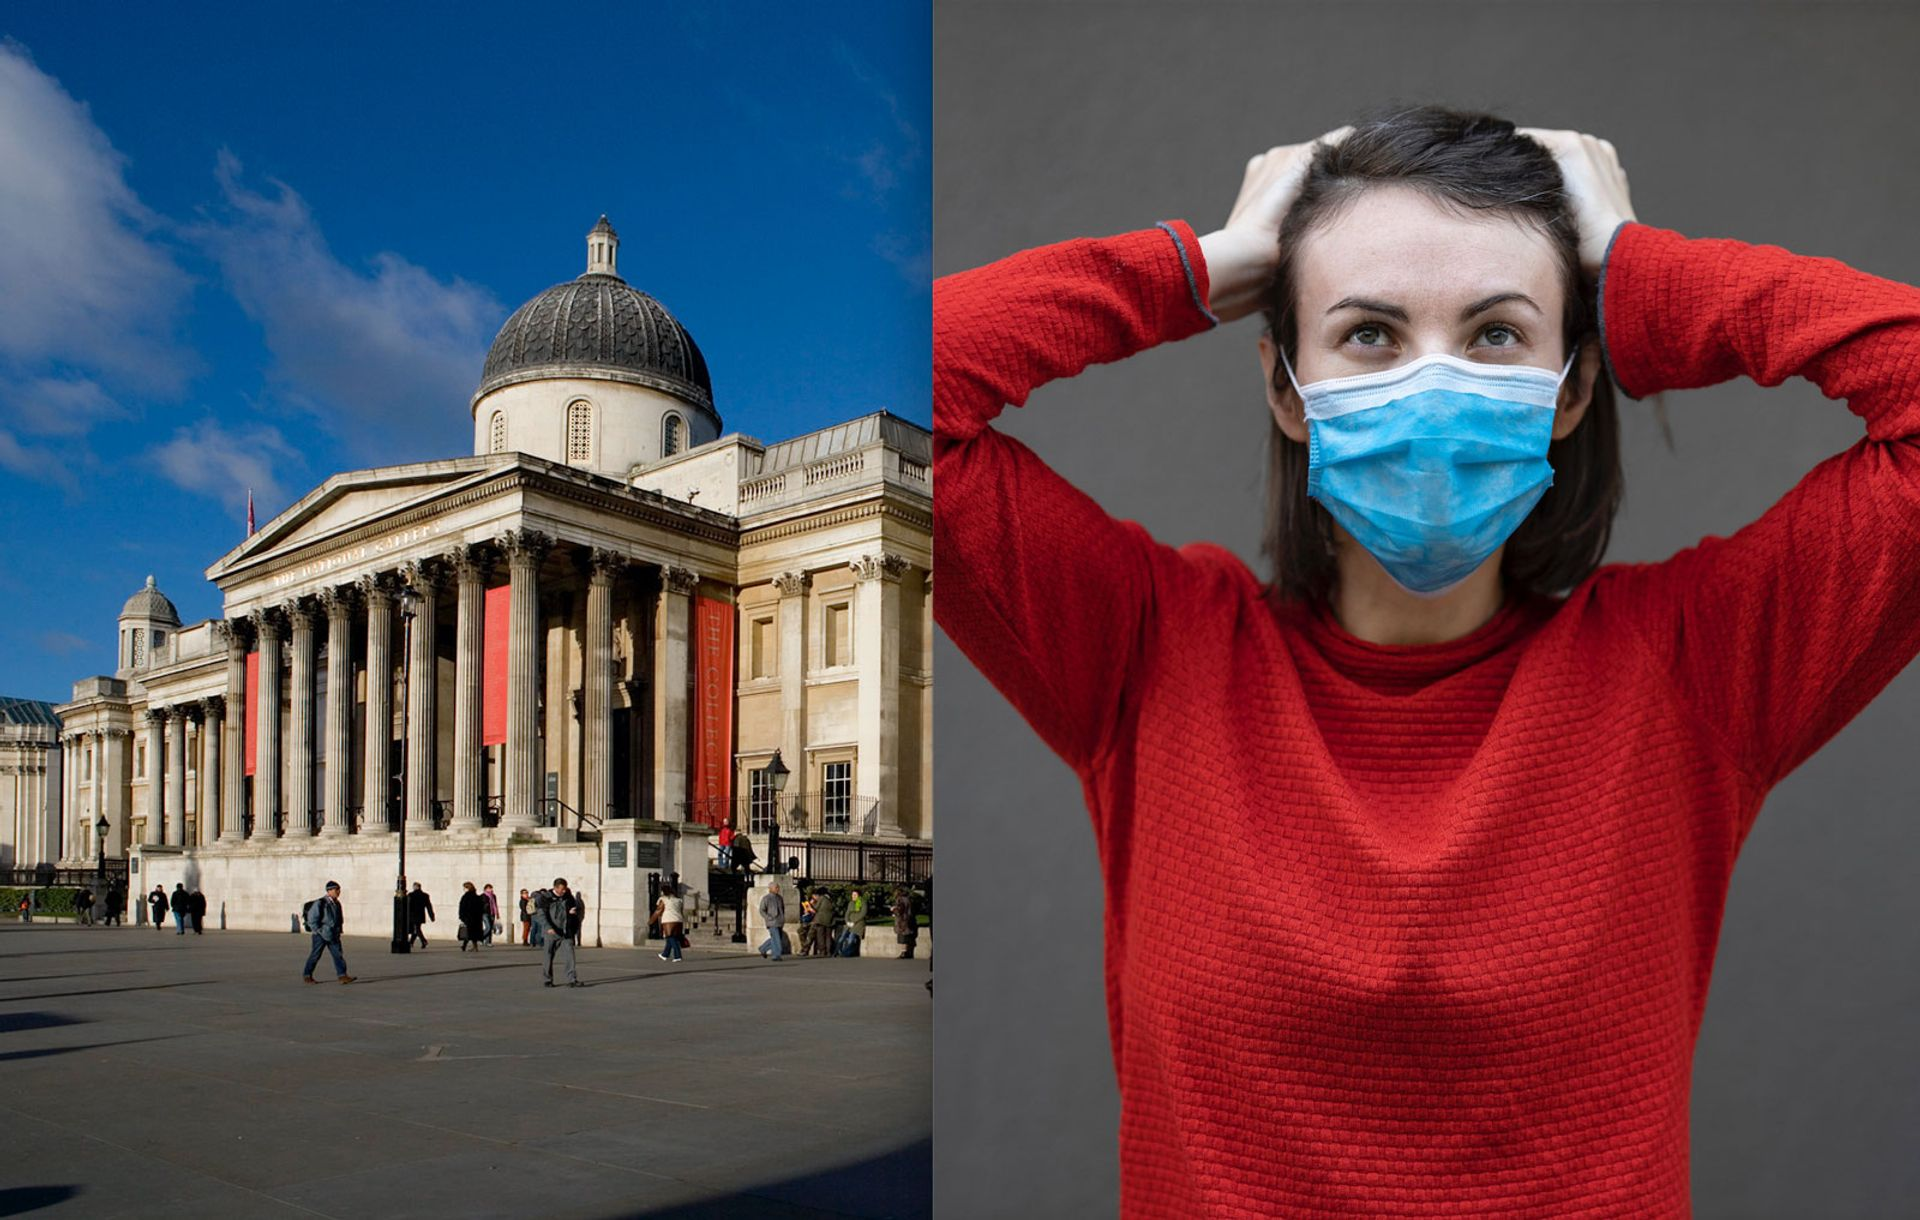 As museums such as London's National Gallery reopen this month, is the British public ready to visit them again? Left: © The National Gallery, London. Right: Photo: Engin Akyurt